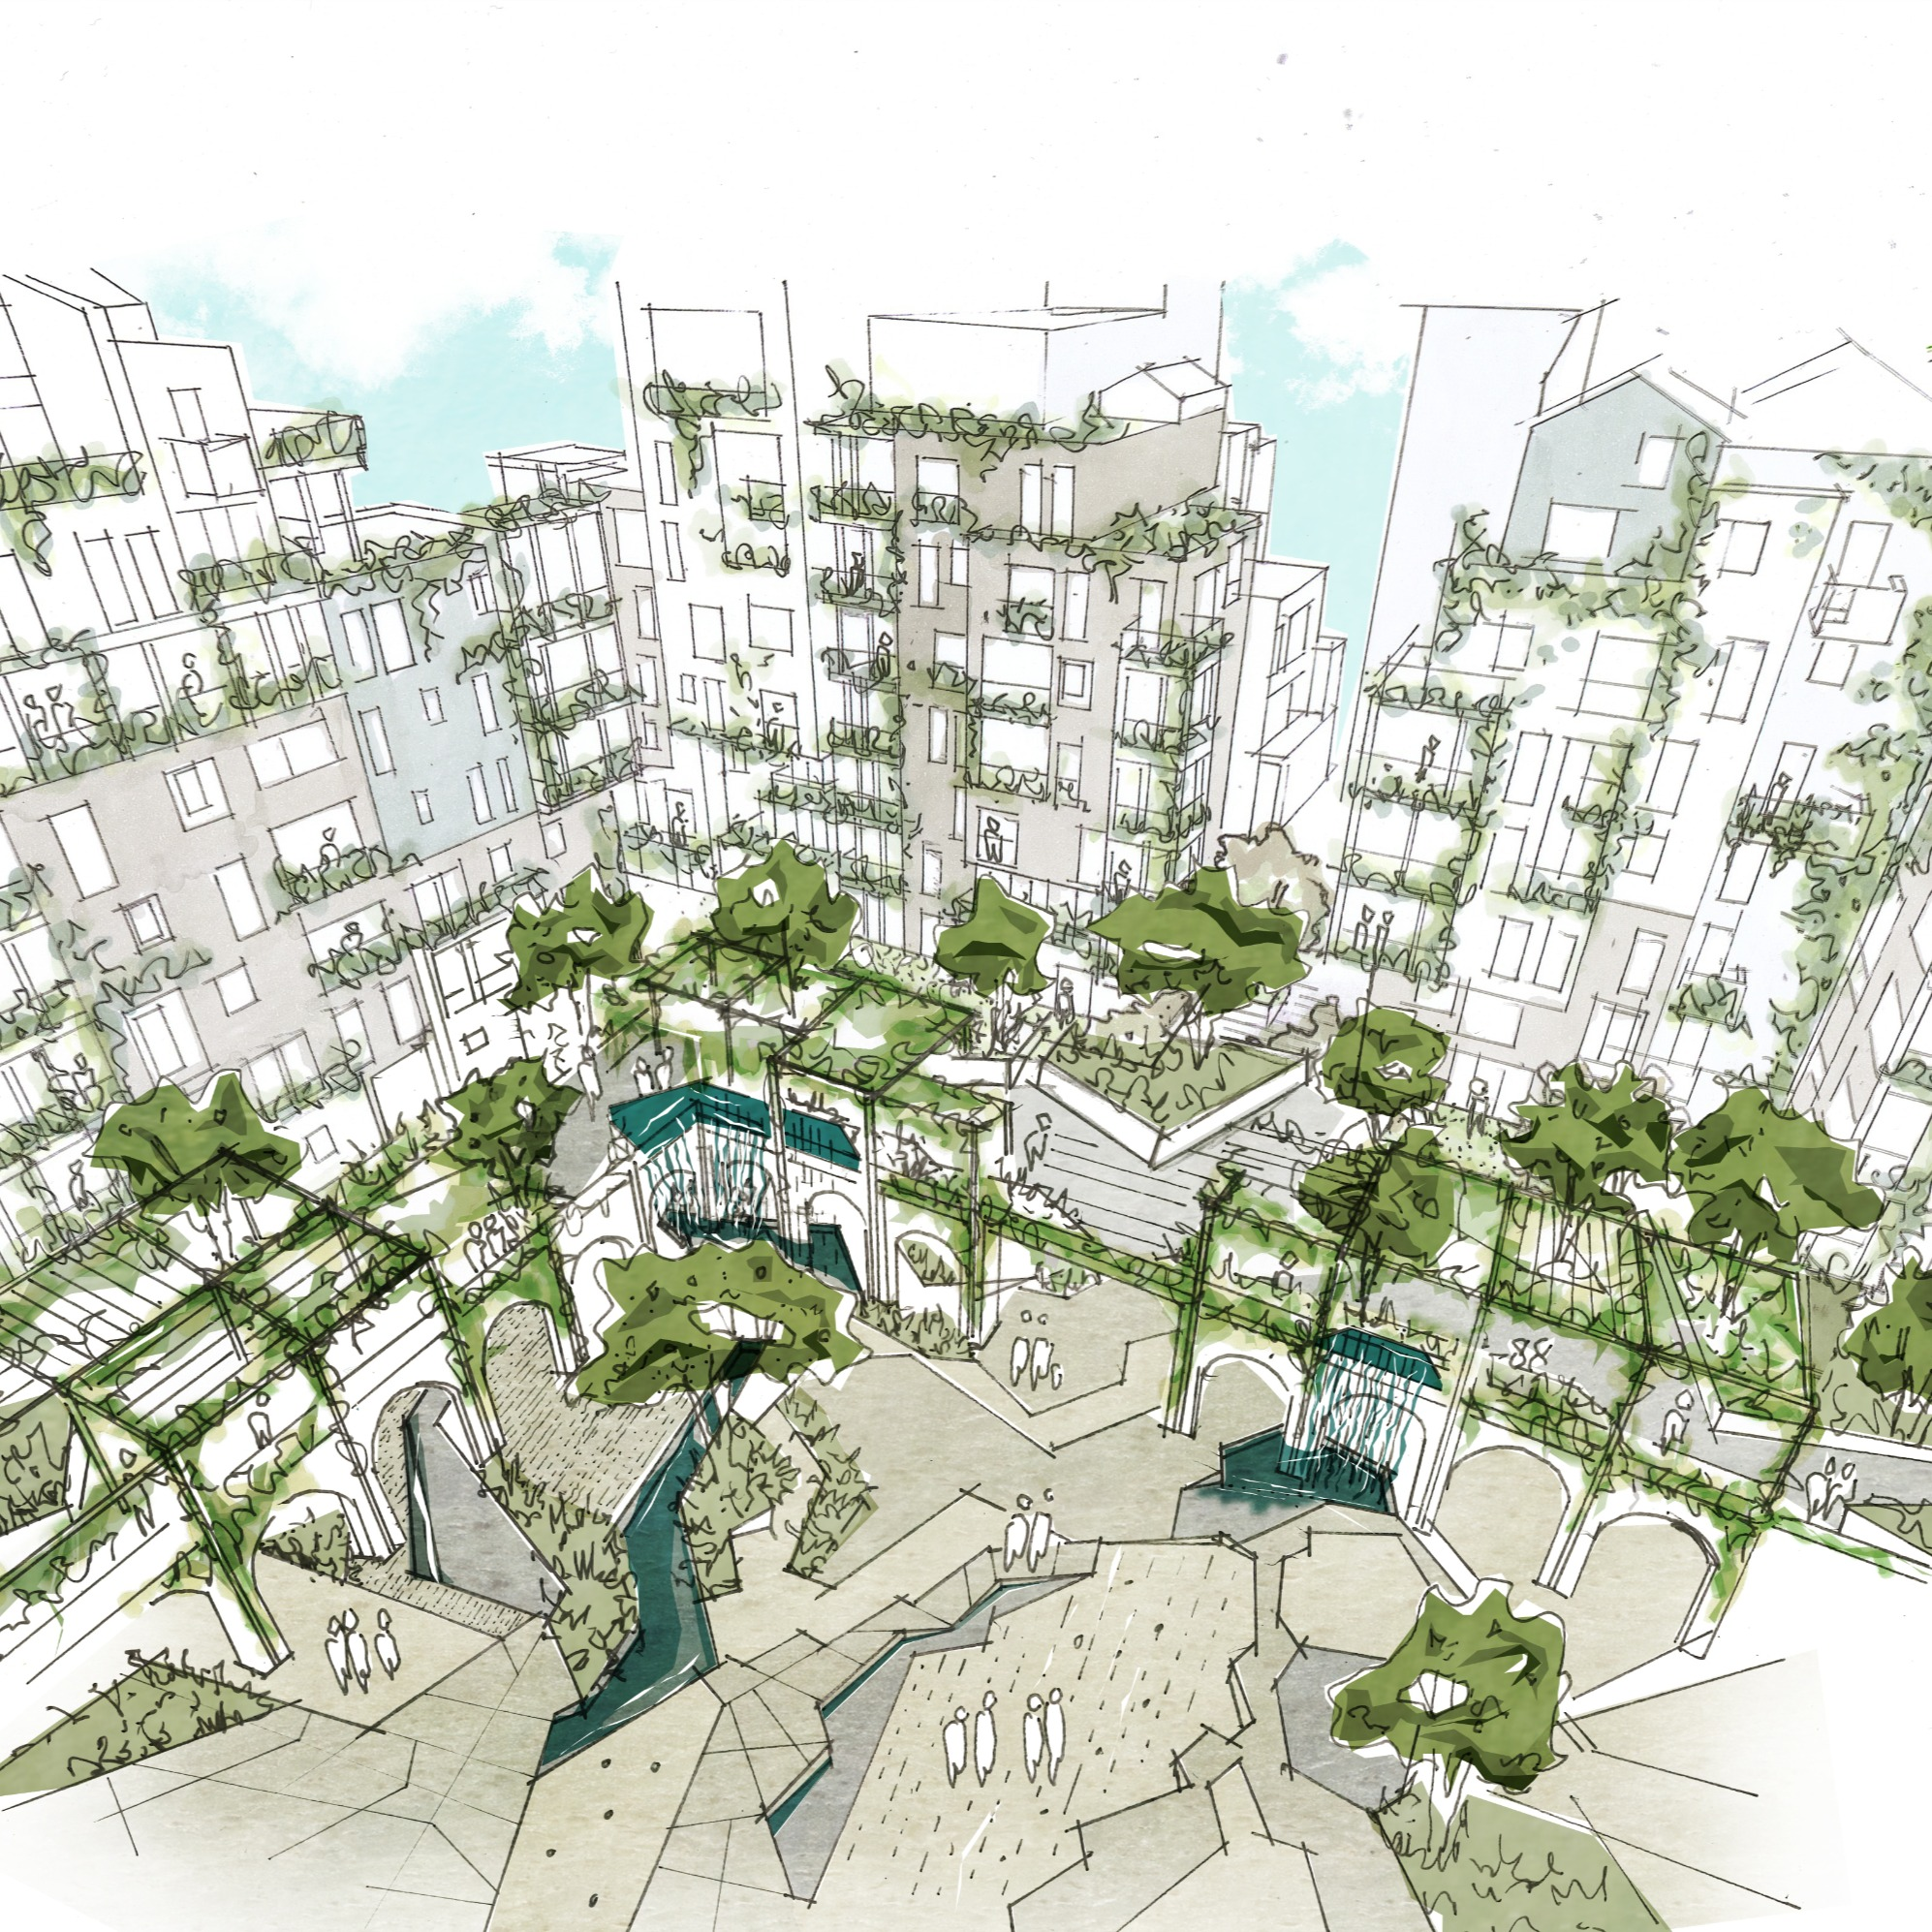 architectural visuals and sketches